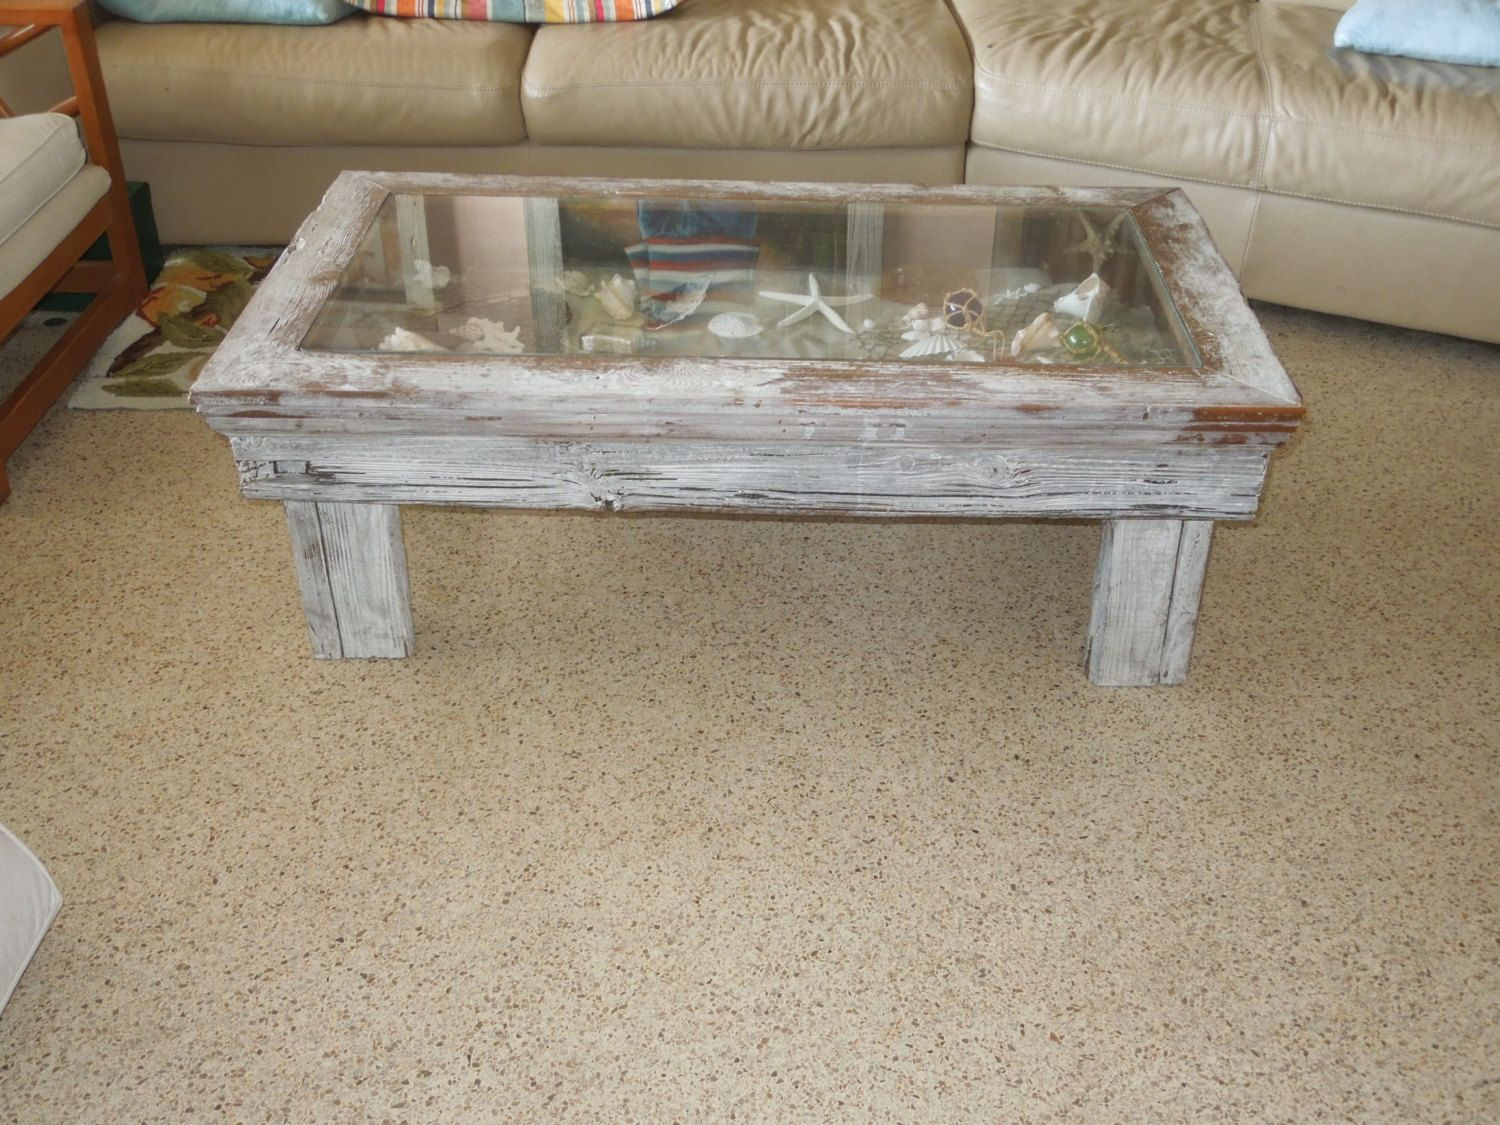 Coastal Coffee Table Shadow Box Style Display Coffee Table - Display coffee table for sale